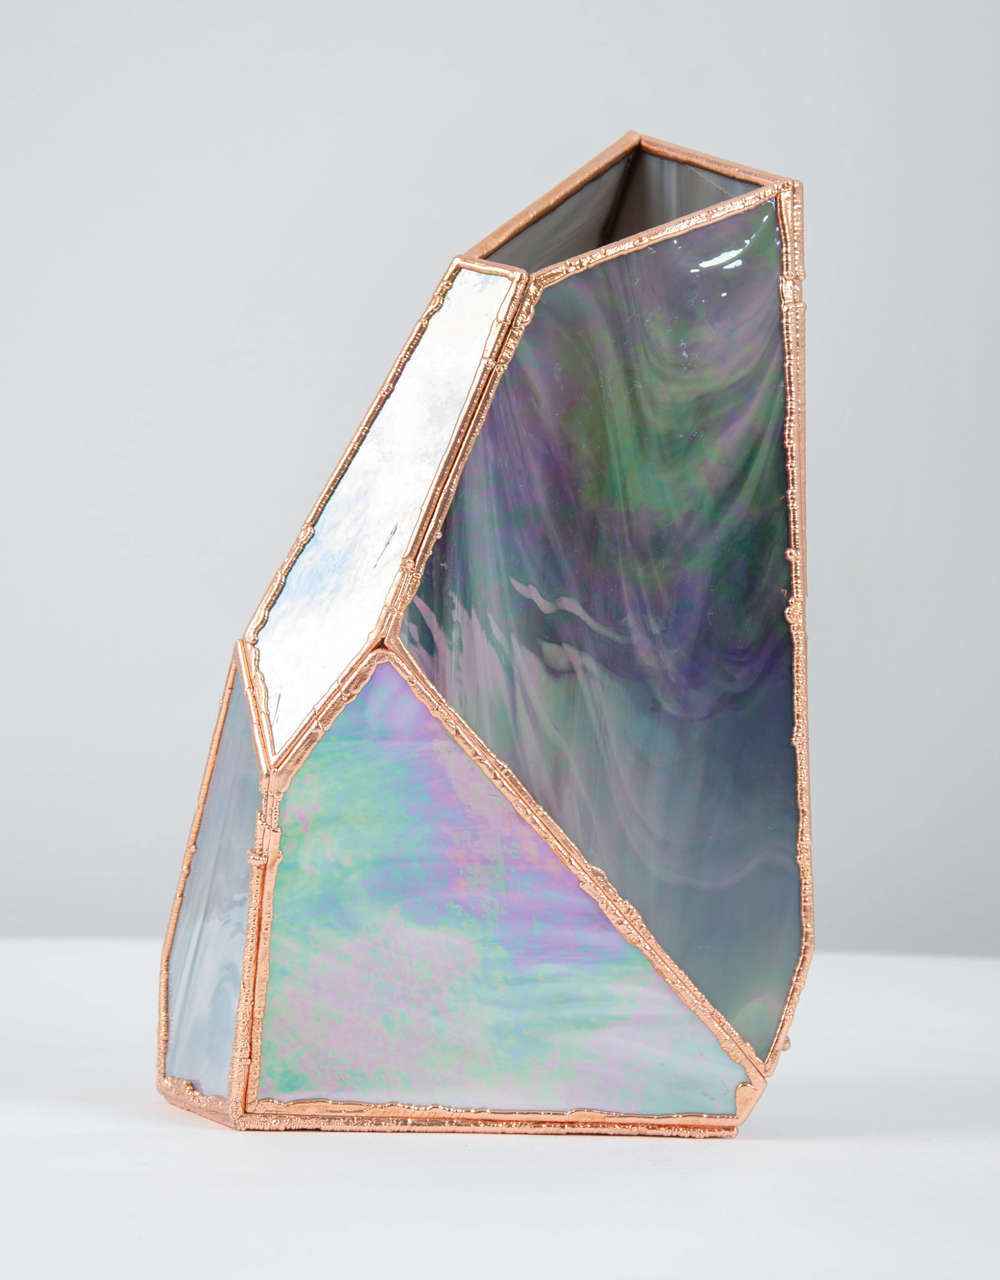 OverNight Vases, Unique Glass and Copper Mixed Colored Vases by Odd Matter For Sale 1